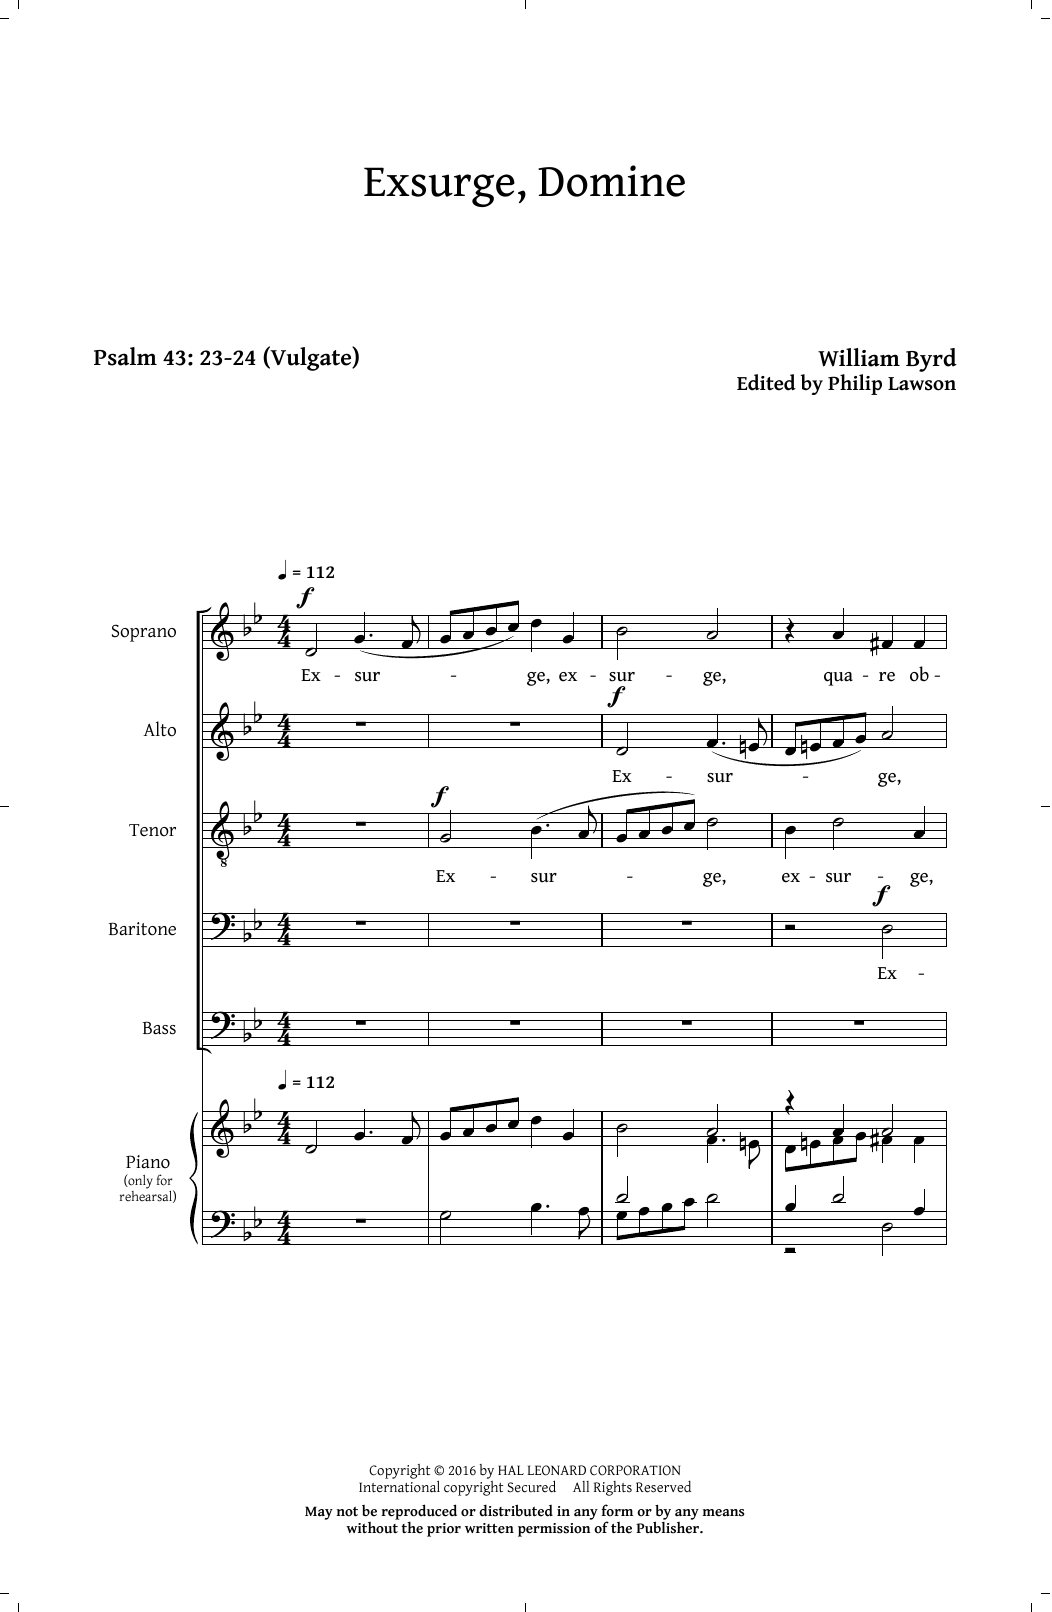 Philip Lawson Exsurge, Domine sheet music notes and chords. Download Printable PDF.